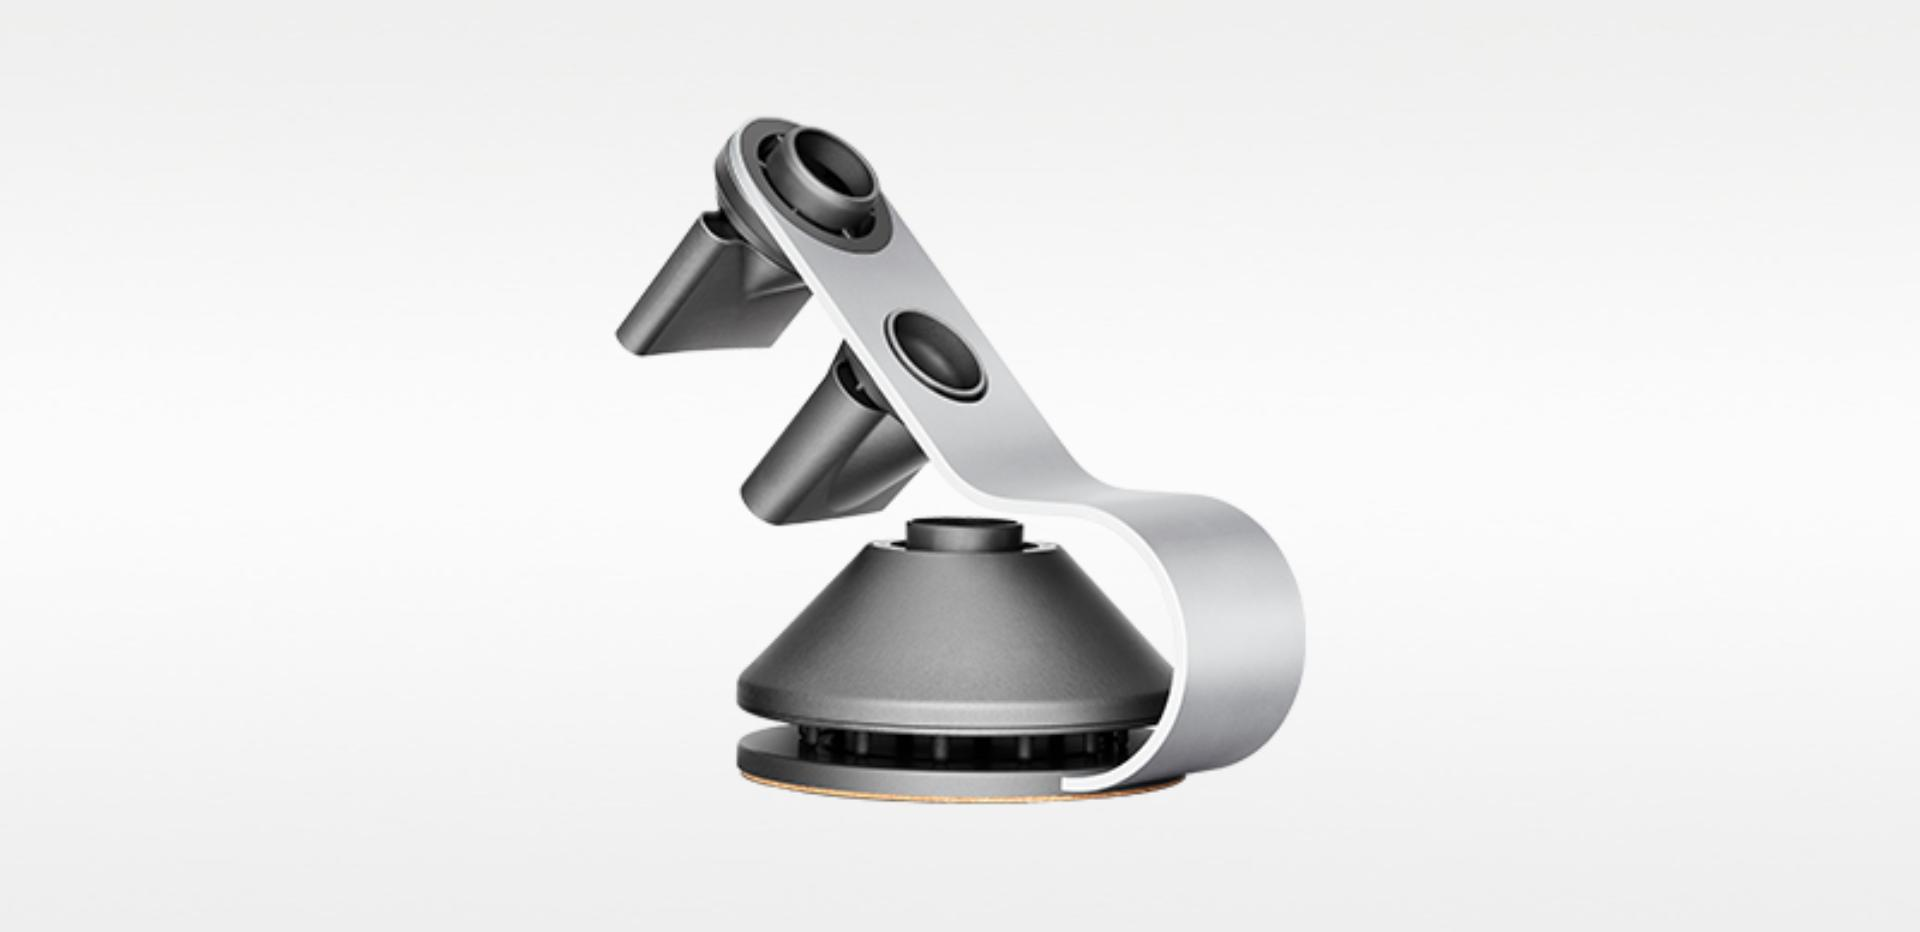 Dyson Supersonic™ display stand